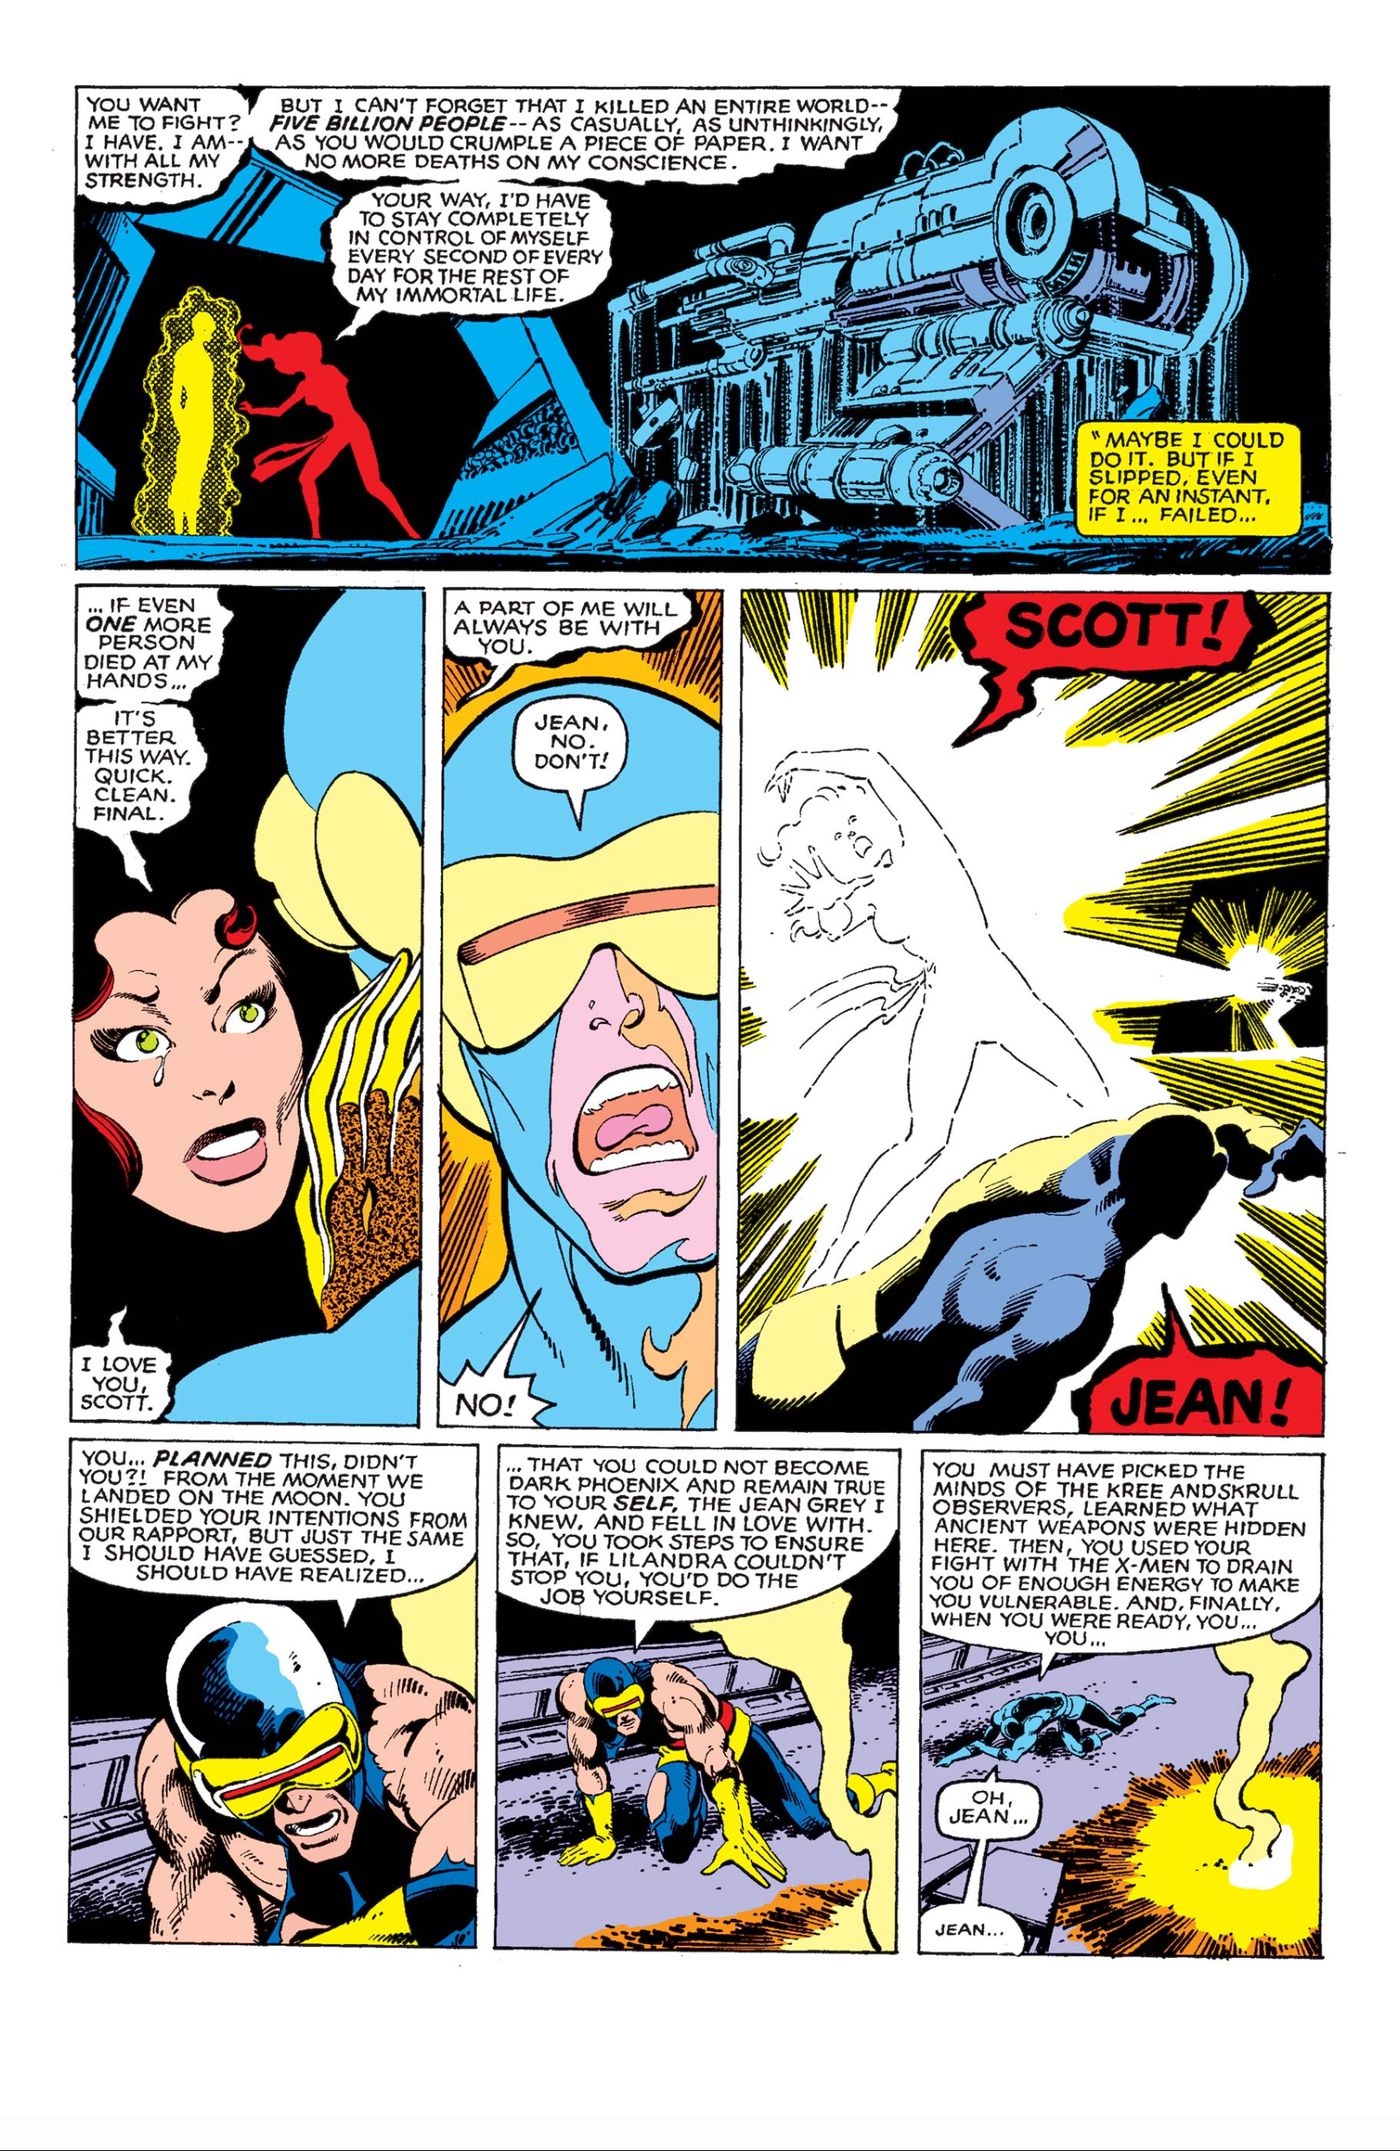 Dark Phoenix's ending is a far cry from the original X-Men comic ...